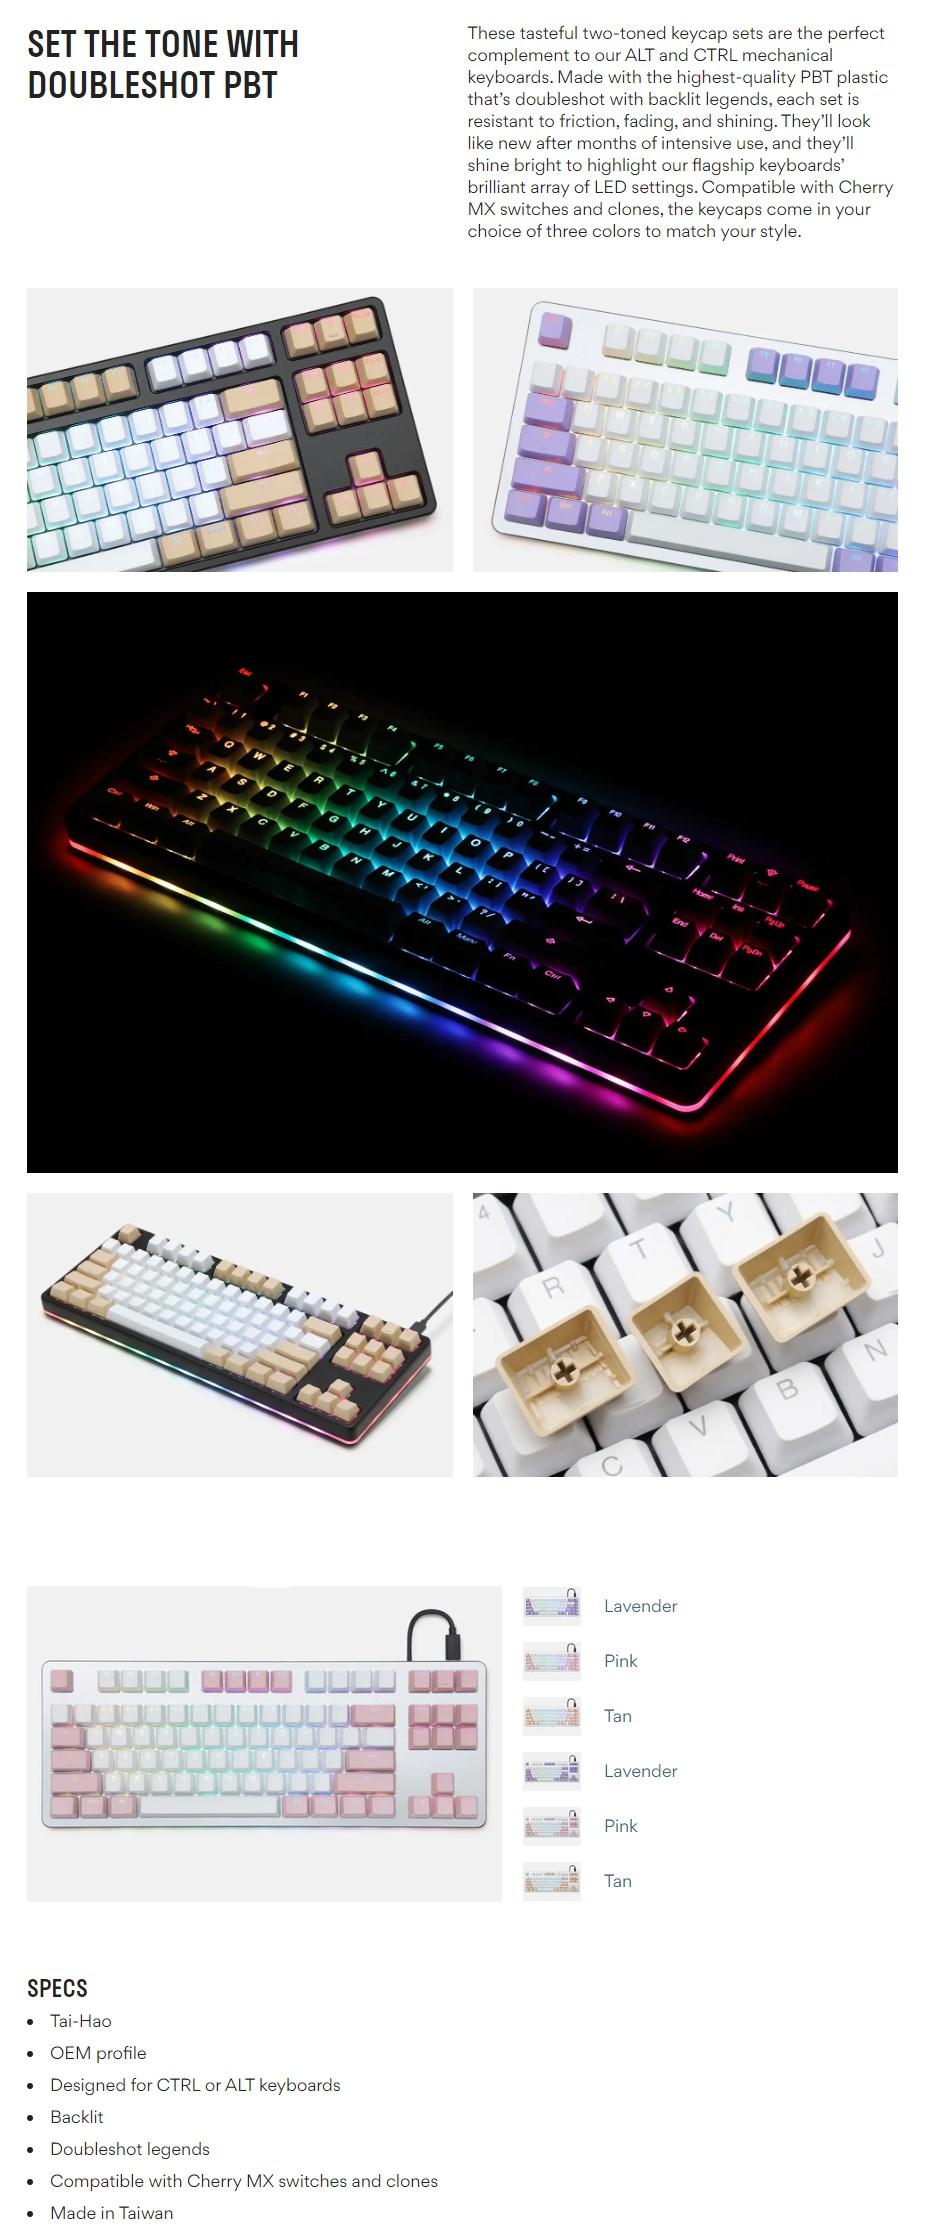 Tai-Hao MX Switch Type Doubleshot PBT 87-Key ANSI Keycap Set - Pink/White - Overview 2